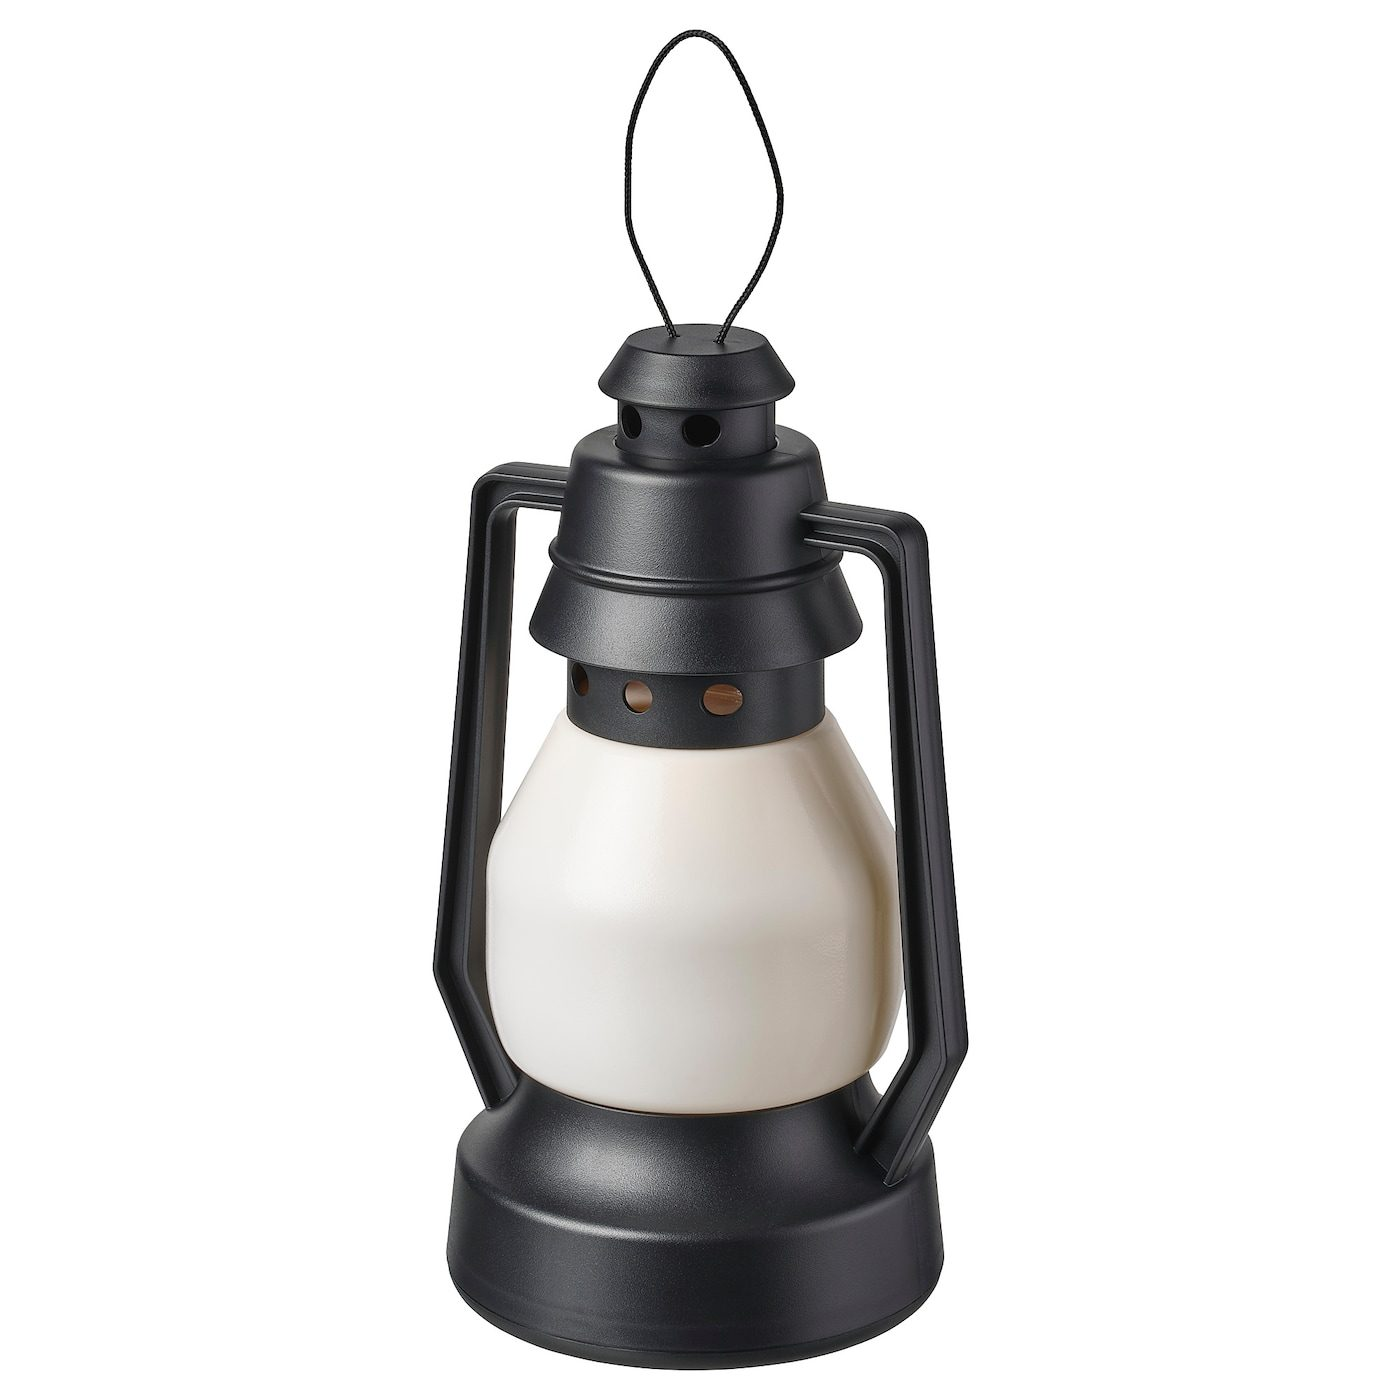 Vinterfest Led Decorative Light Vinterfest Battery Operated Indoor Outdoor Lantern Black Ikeapedia